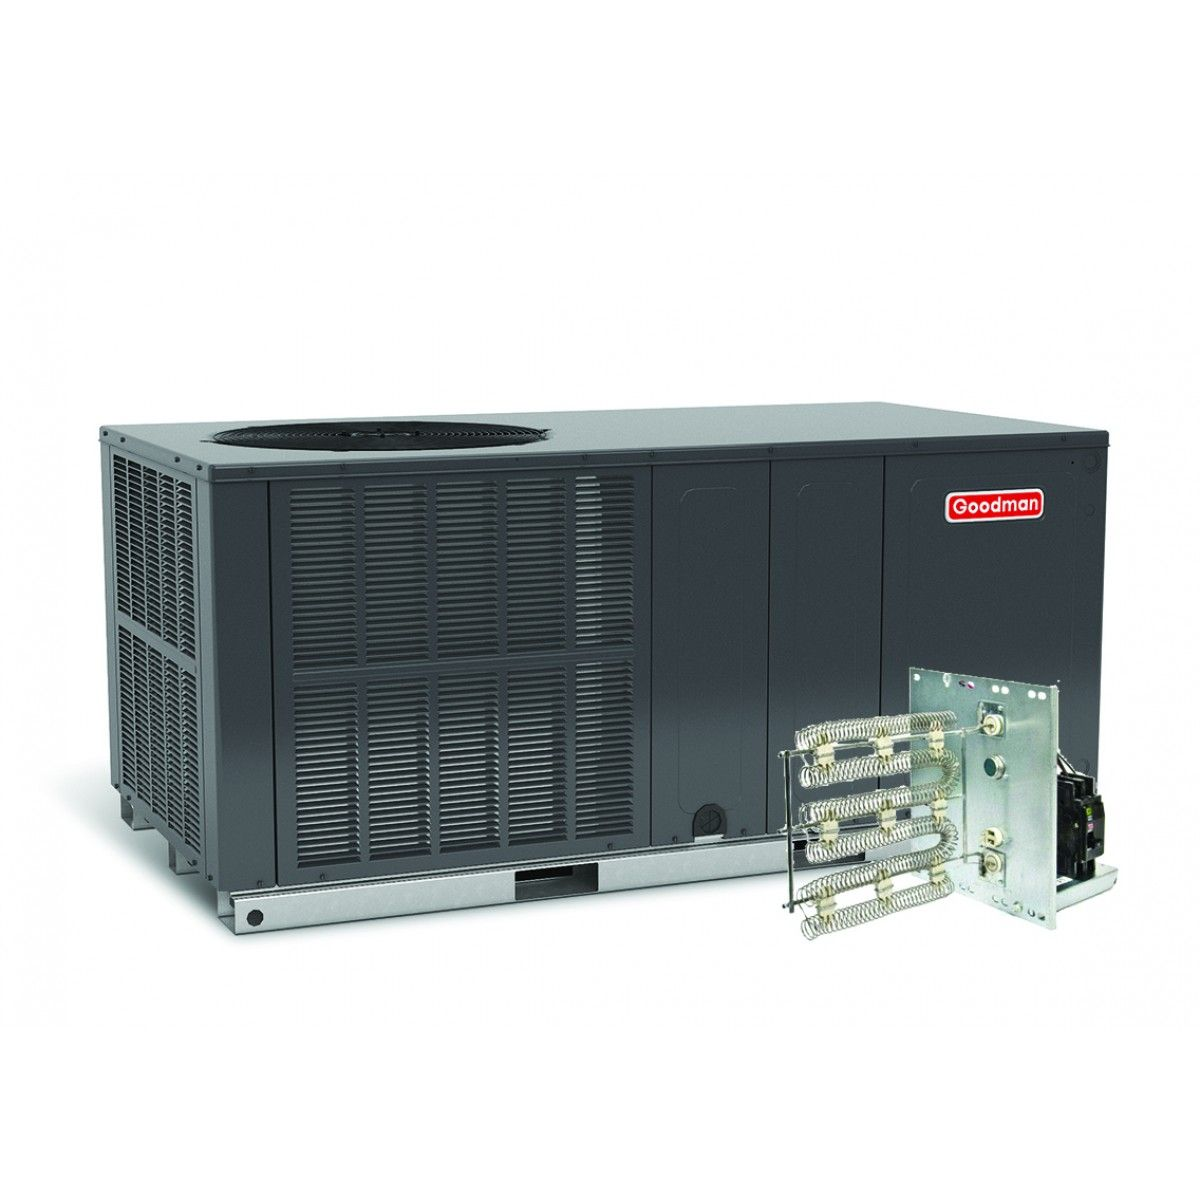 3 5 Ton Ac Unit >> Goodman 3.0 Ton 14 SEER Heat Pump Package Unit Horizontal - GPH1436H41